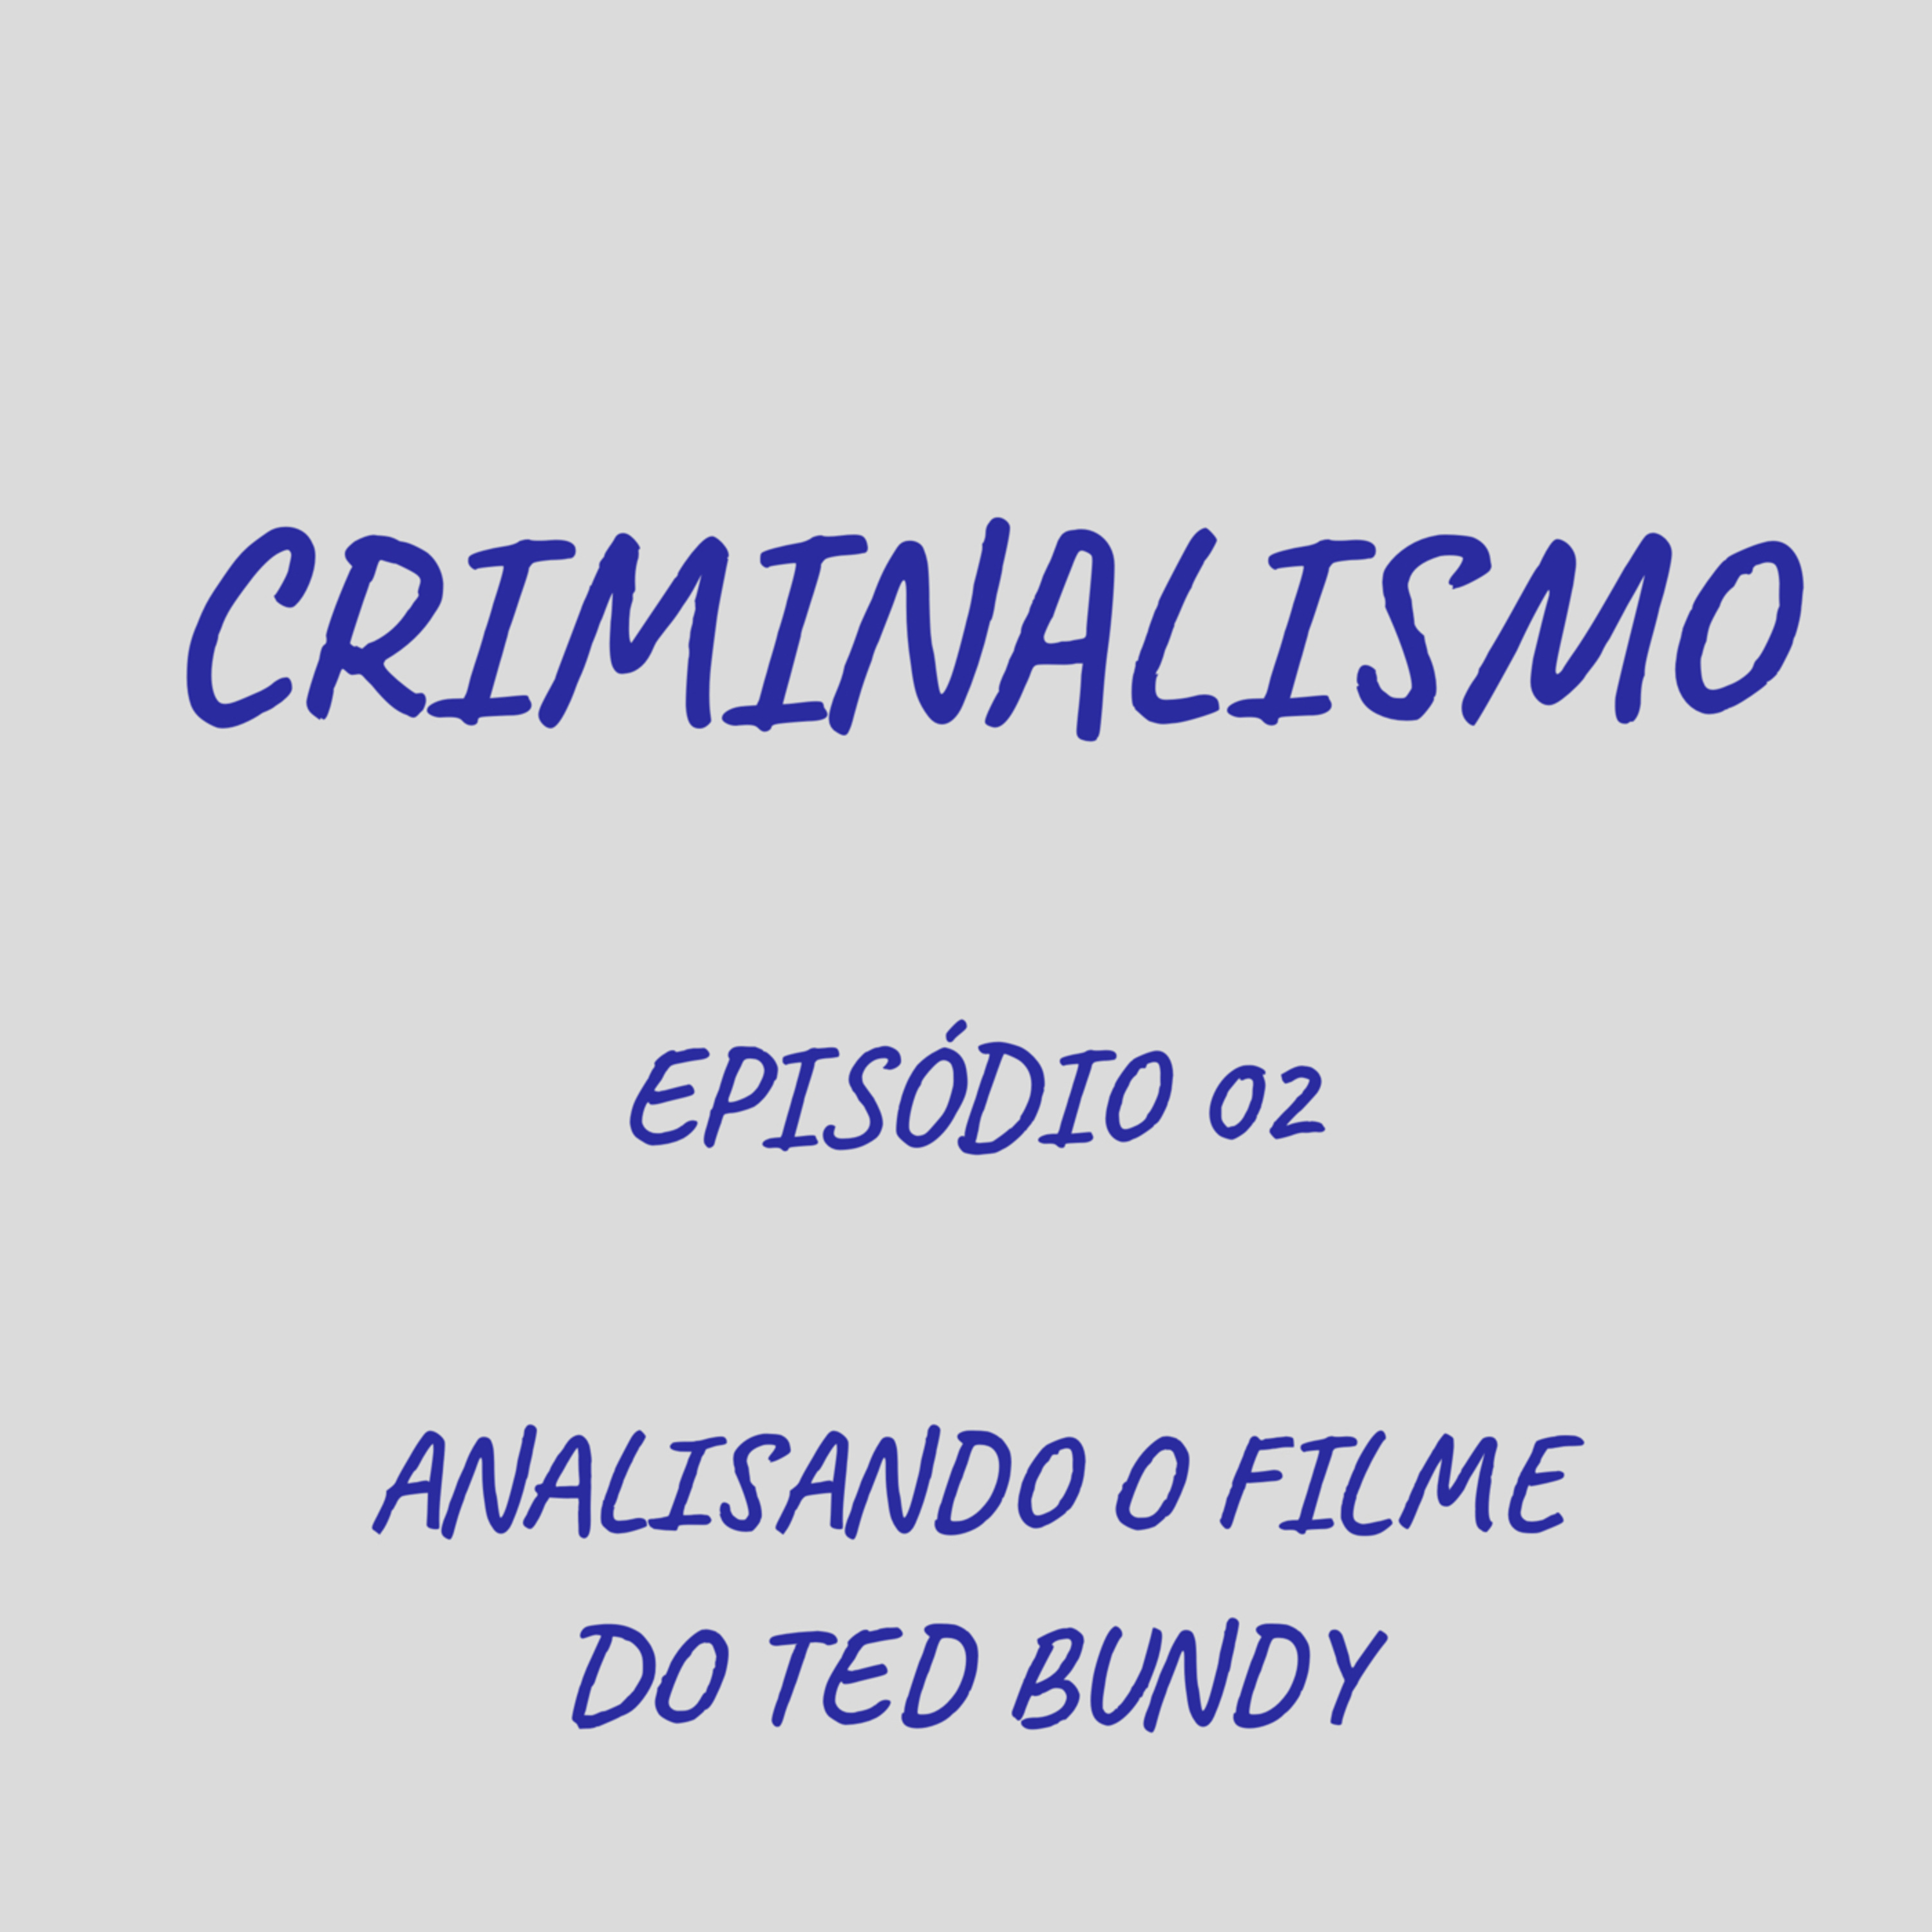 02 - Analisando o filme do Ted Bundy